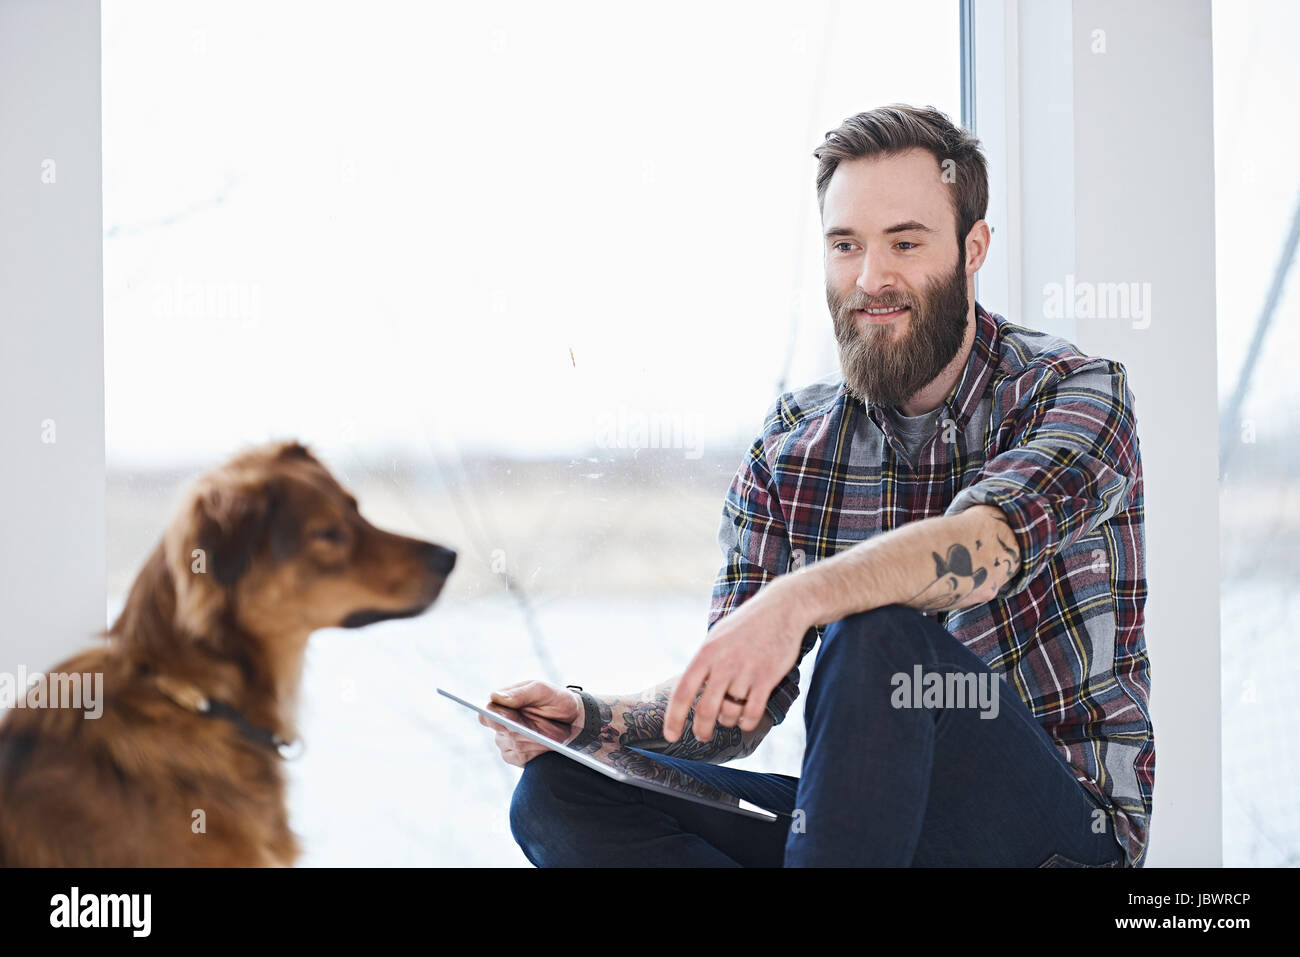 Young male designer with dog in design studio window seat - Stock Image